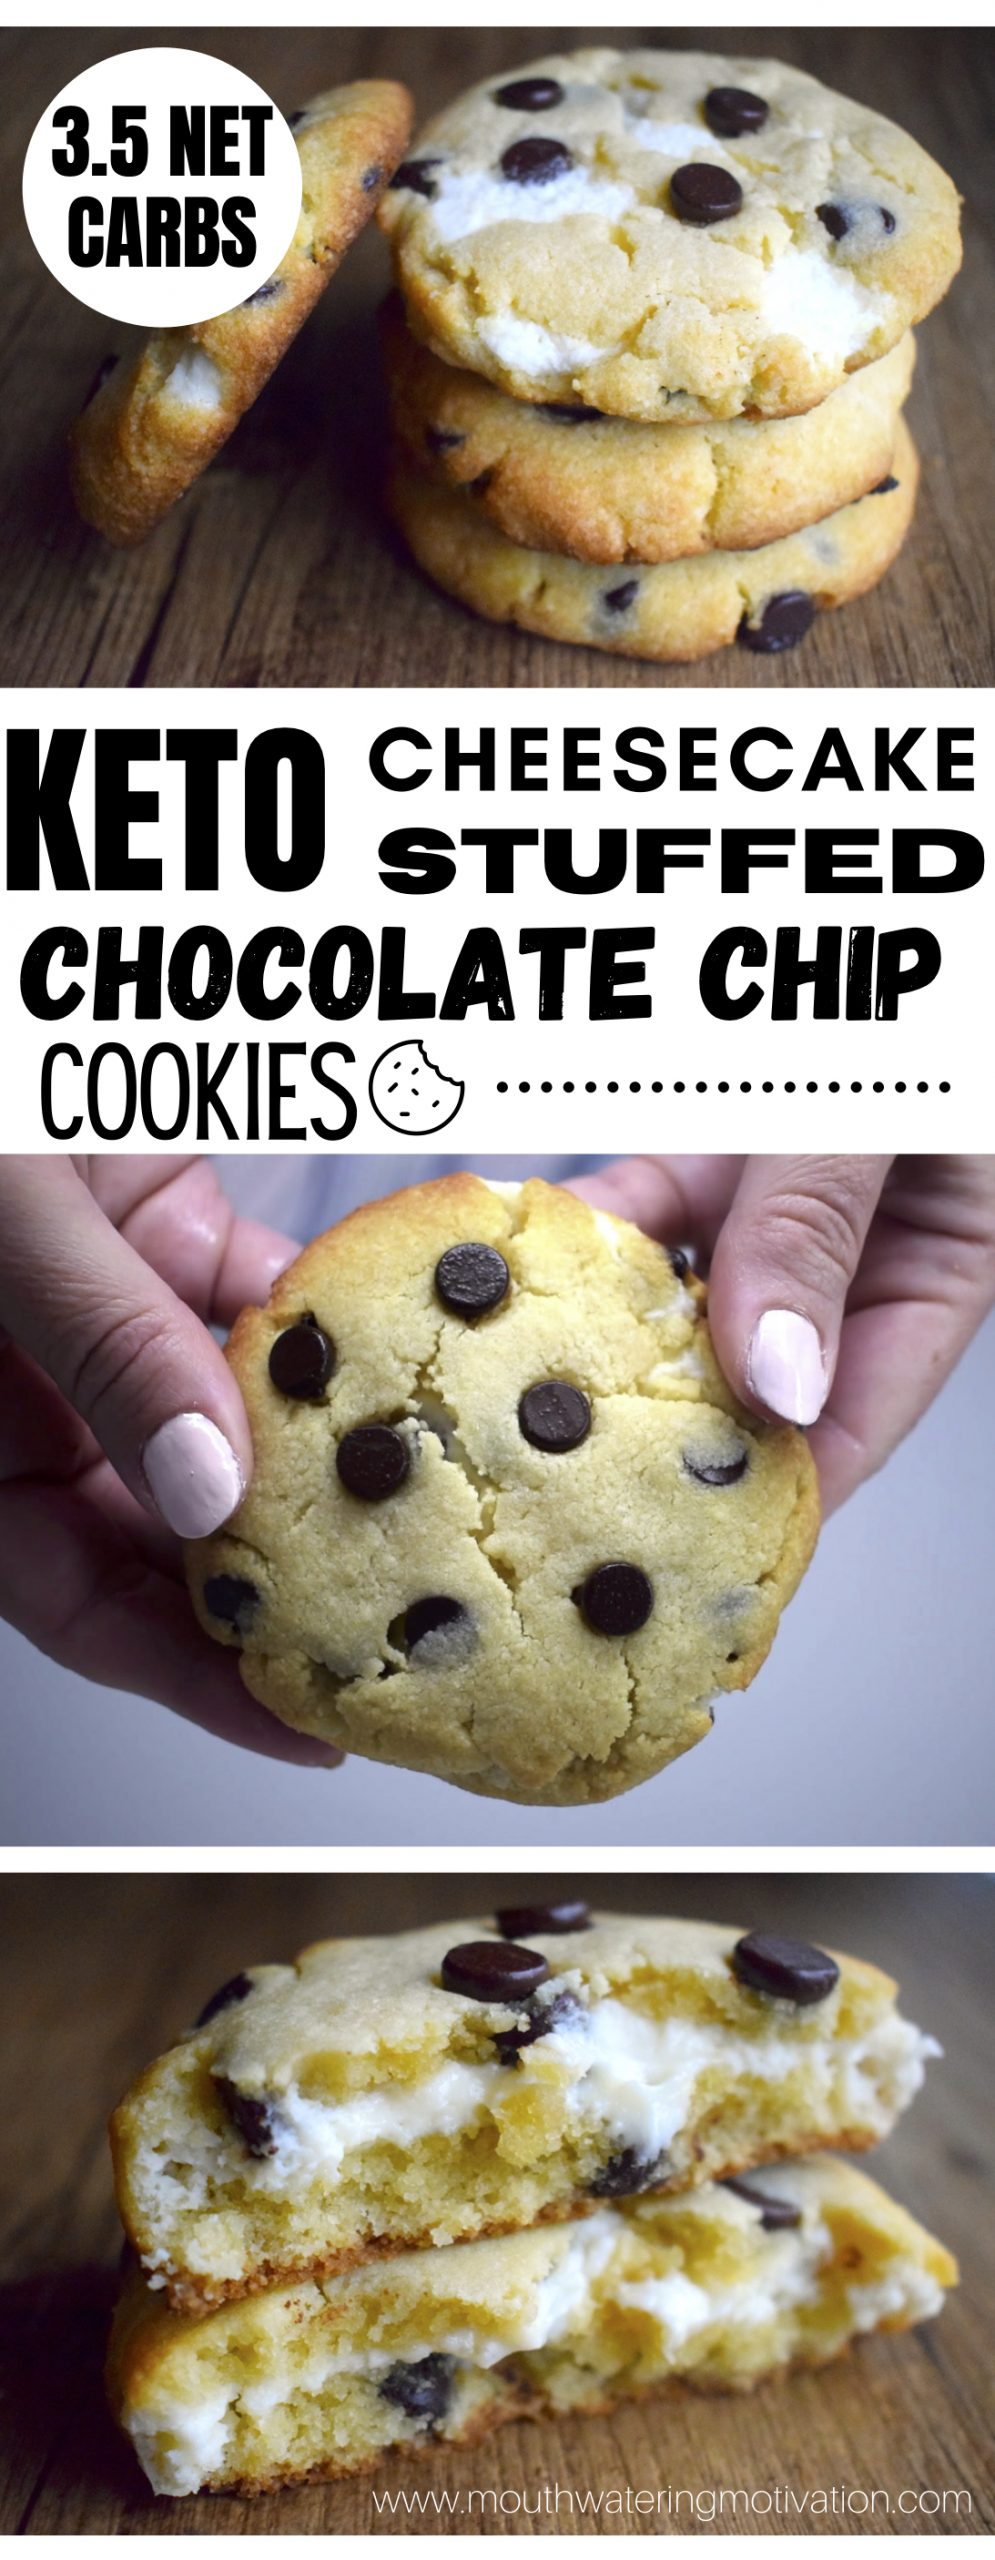 KETO CHEESECAKE FILLED CHOCOLATE CHIP COOKIES